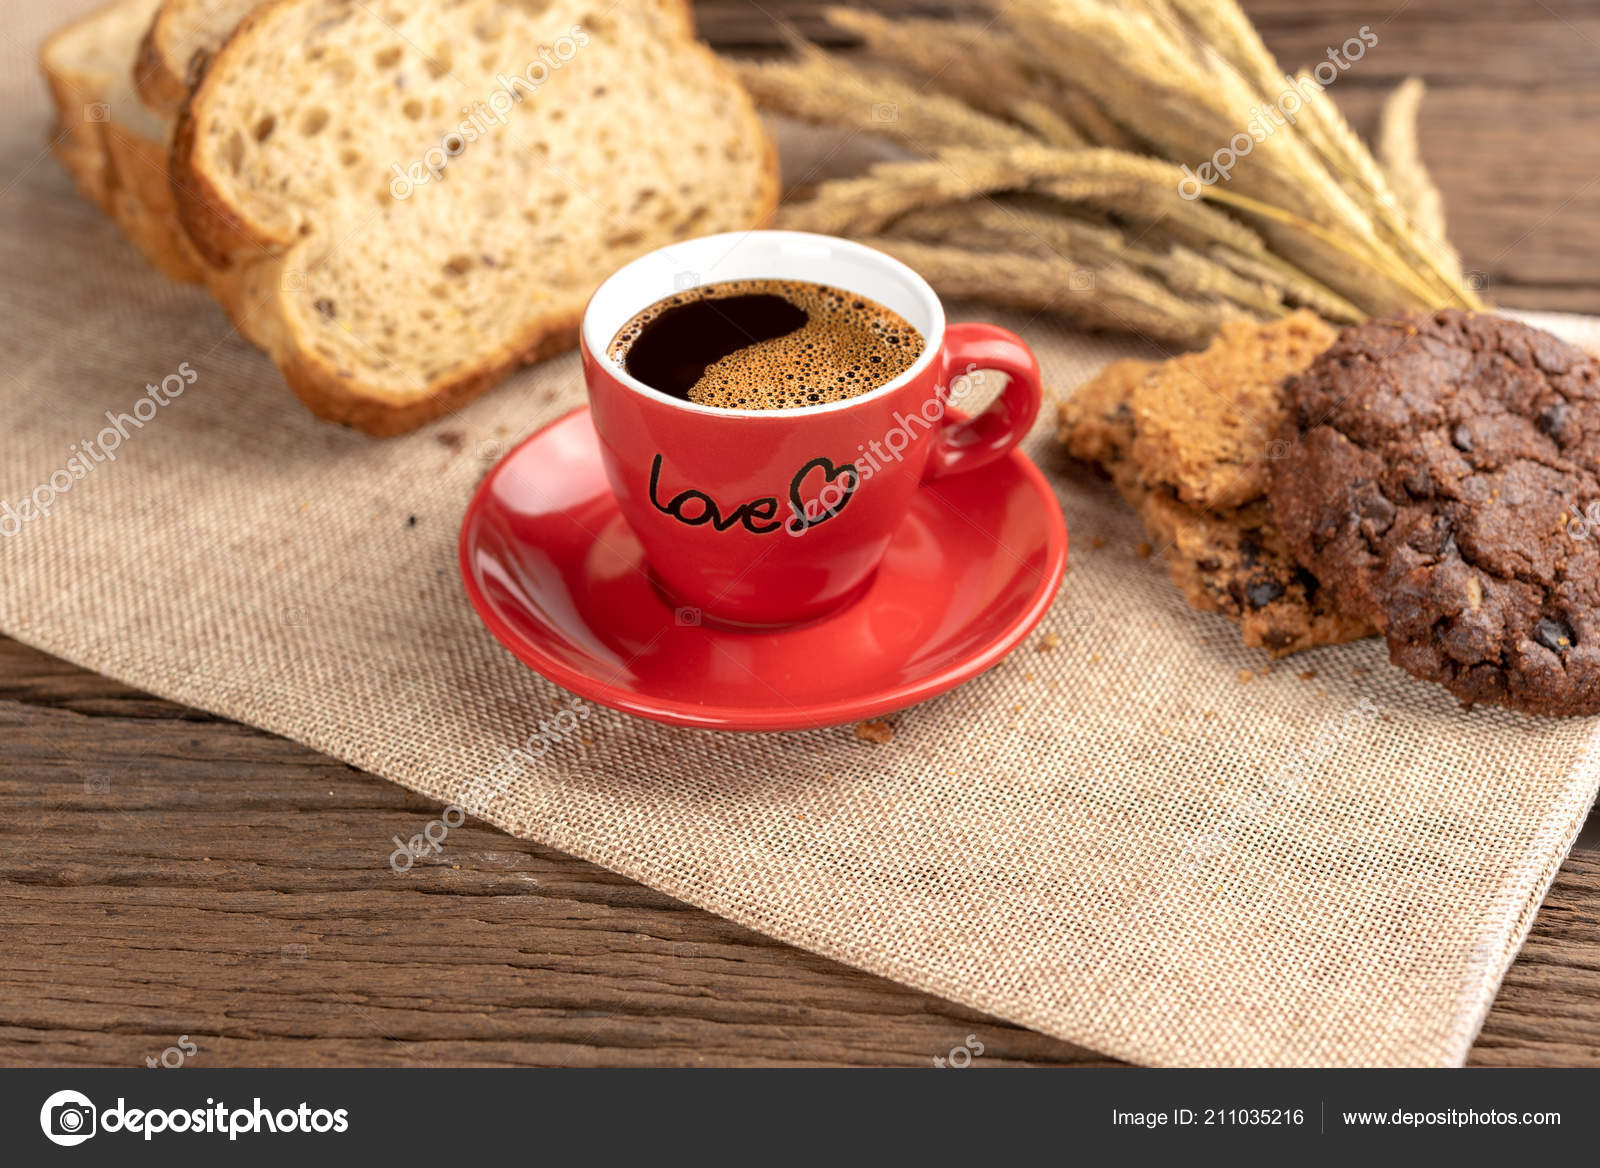 Hot Coffee Cup Breakfast Baked Wooden Background Cup Tasty Coffee Stock Photo C Somchaichoosiri 211035216